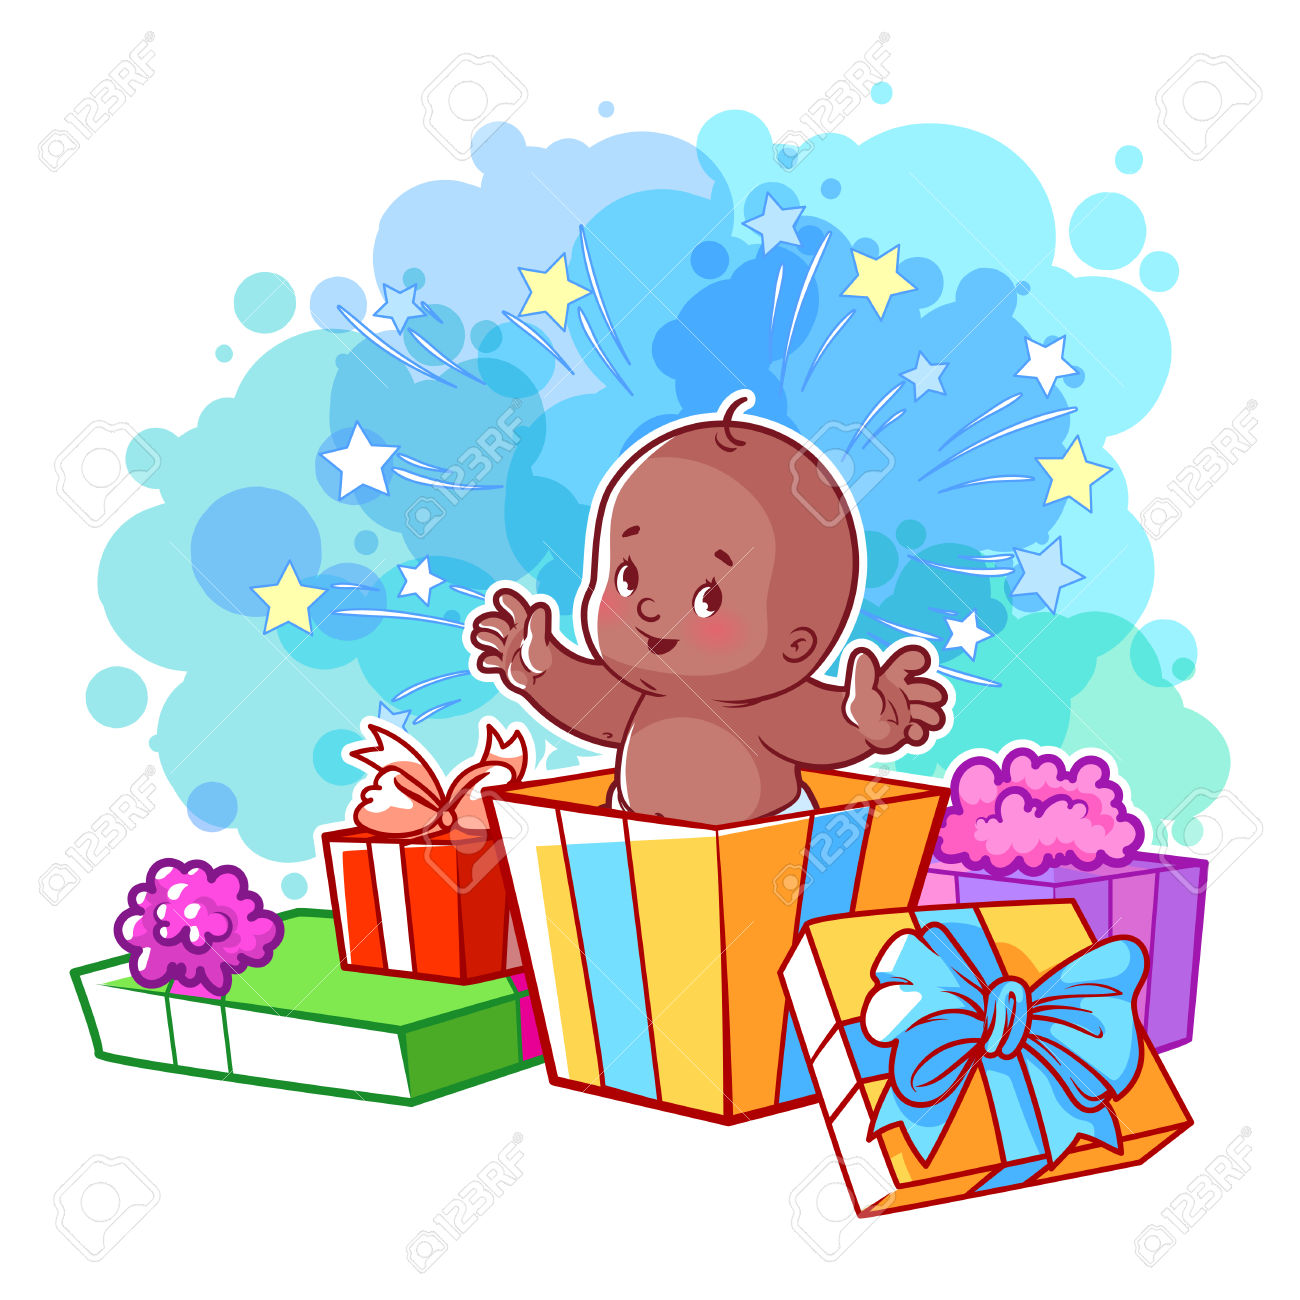 Baby gift clipart clip art free download Cartoon Gift Box Clipart | Free download best Cartoon Gift Box ... clip art free download